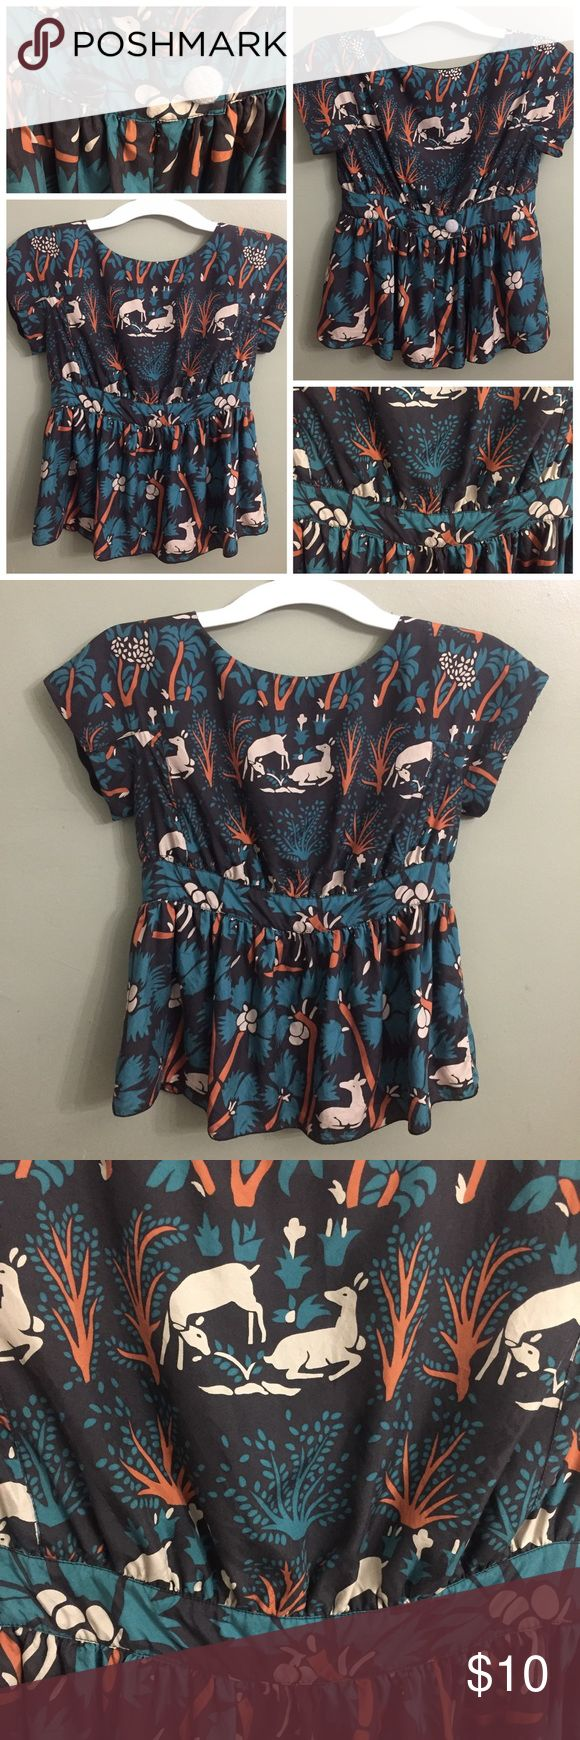 """Anna Sui for Anthropologie """"Deer"""" Print Top, 0 Anna Sui for Anthropologie """"Deer"""" Print Top, 0; freshly laundered, mid-zip closure at the back with button and snap closure. GUC, normal wash wear and small yellowish stain as pictured. Anna Sui Tops Blouses"""